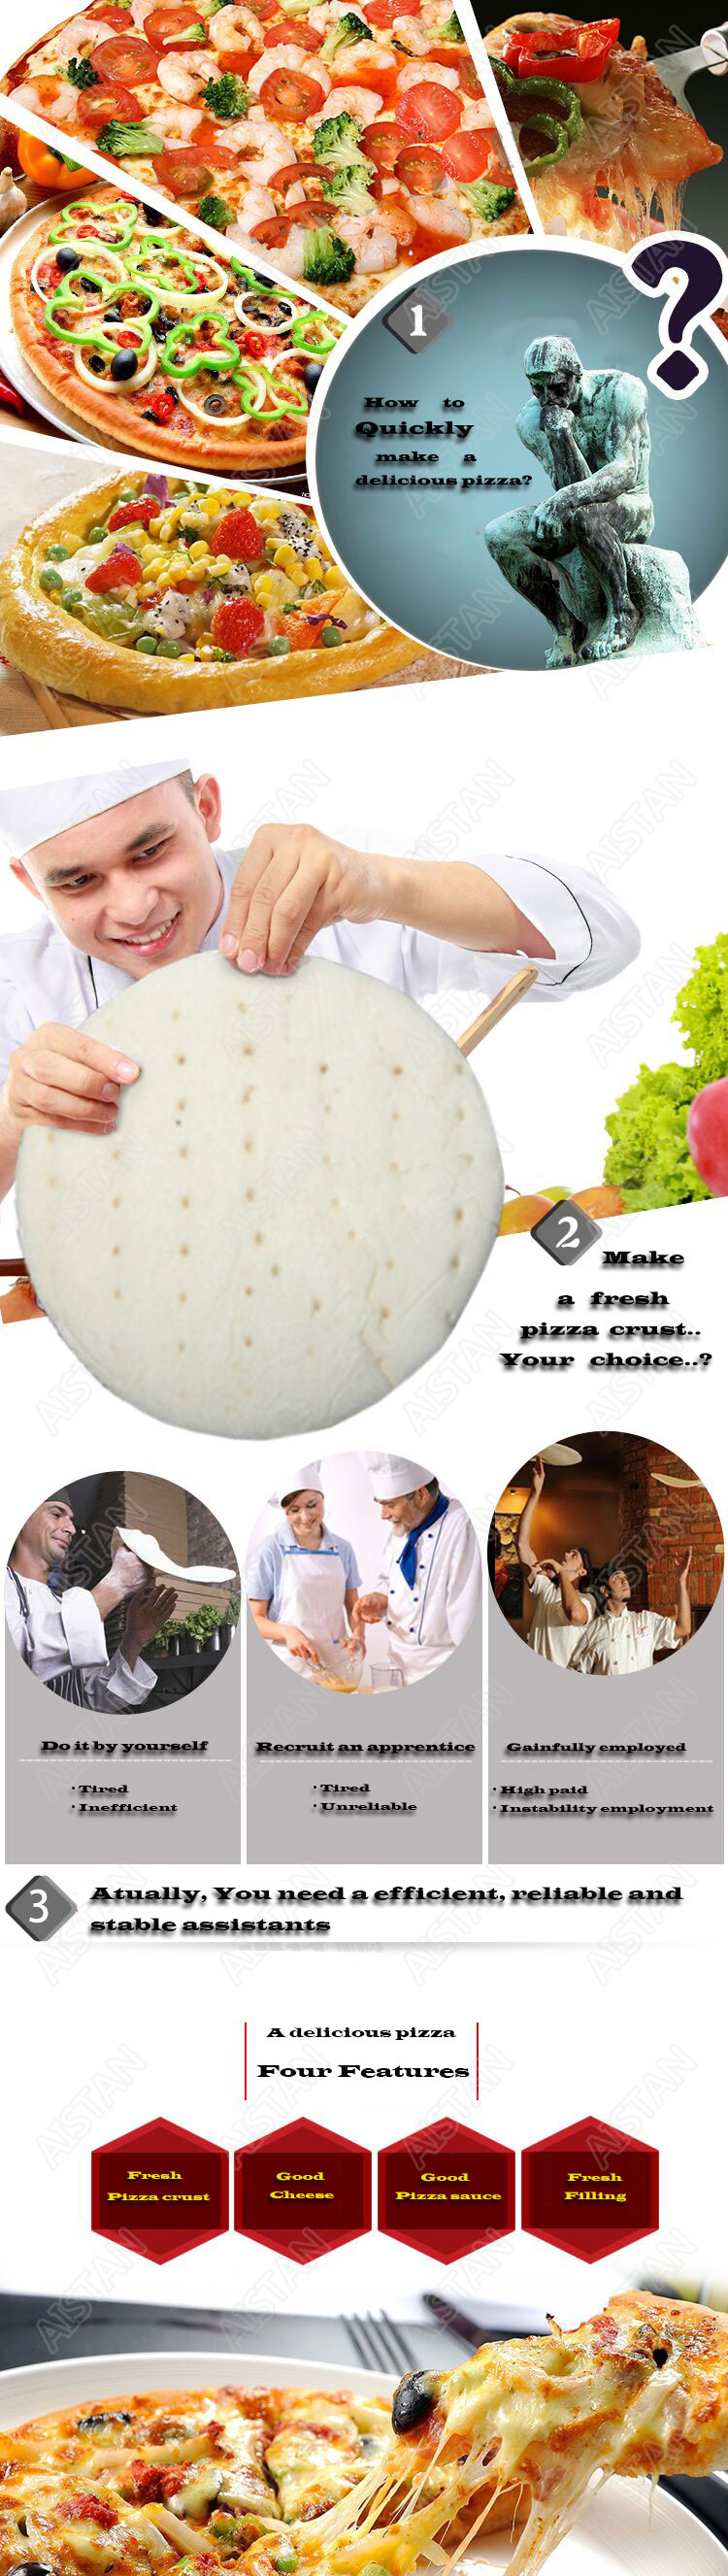 DR1V/DR1V-FP electric counter top stainless steel pizza dough roller machine pizza making machine dough sheeter 1